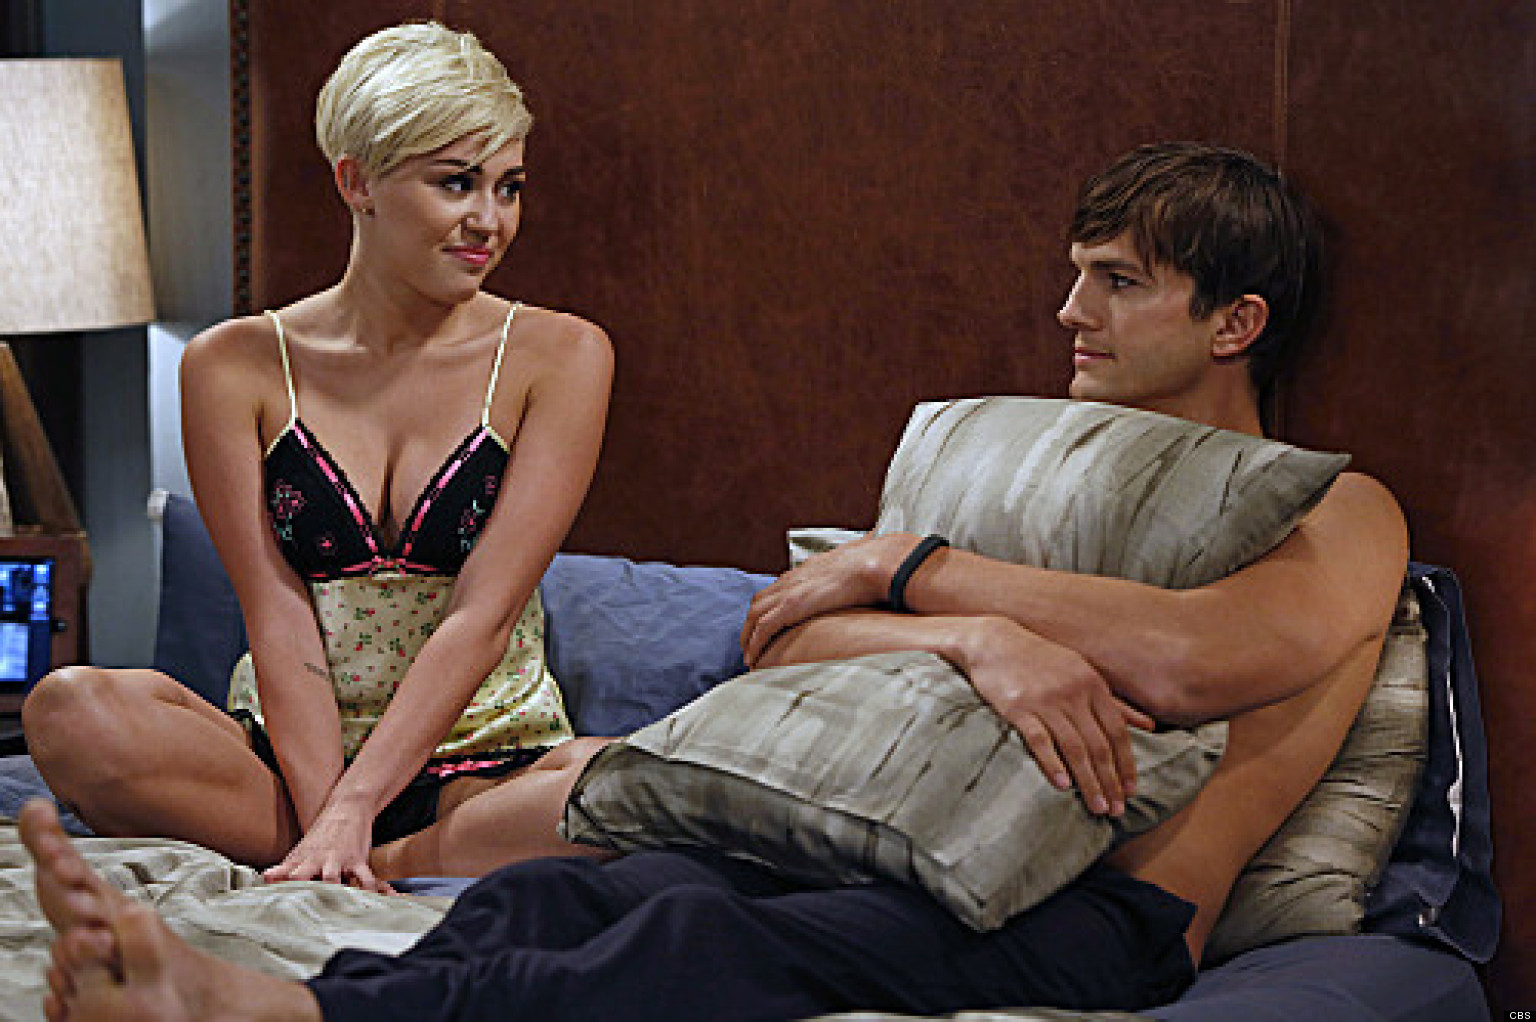 Two And A Half Men & Miley Cyrus: First Look At Singer